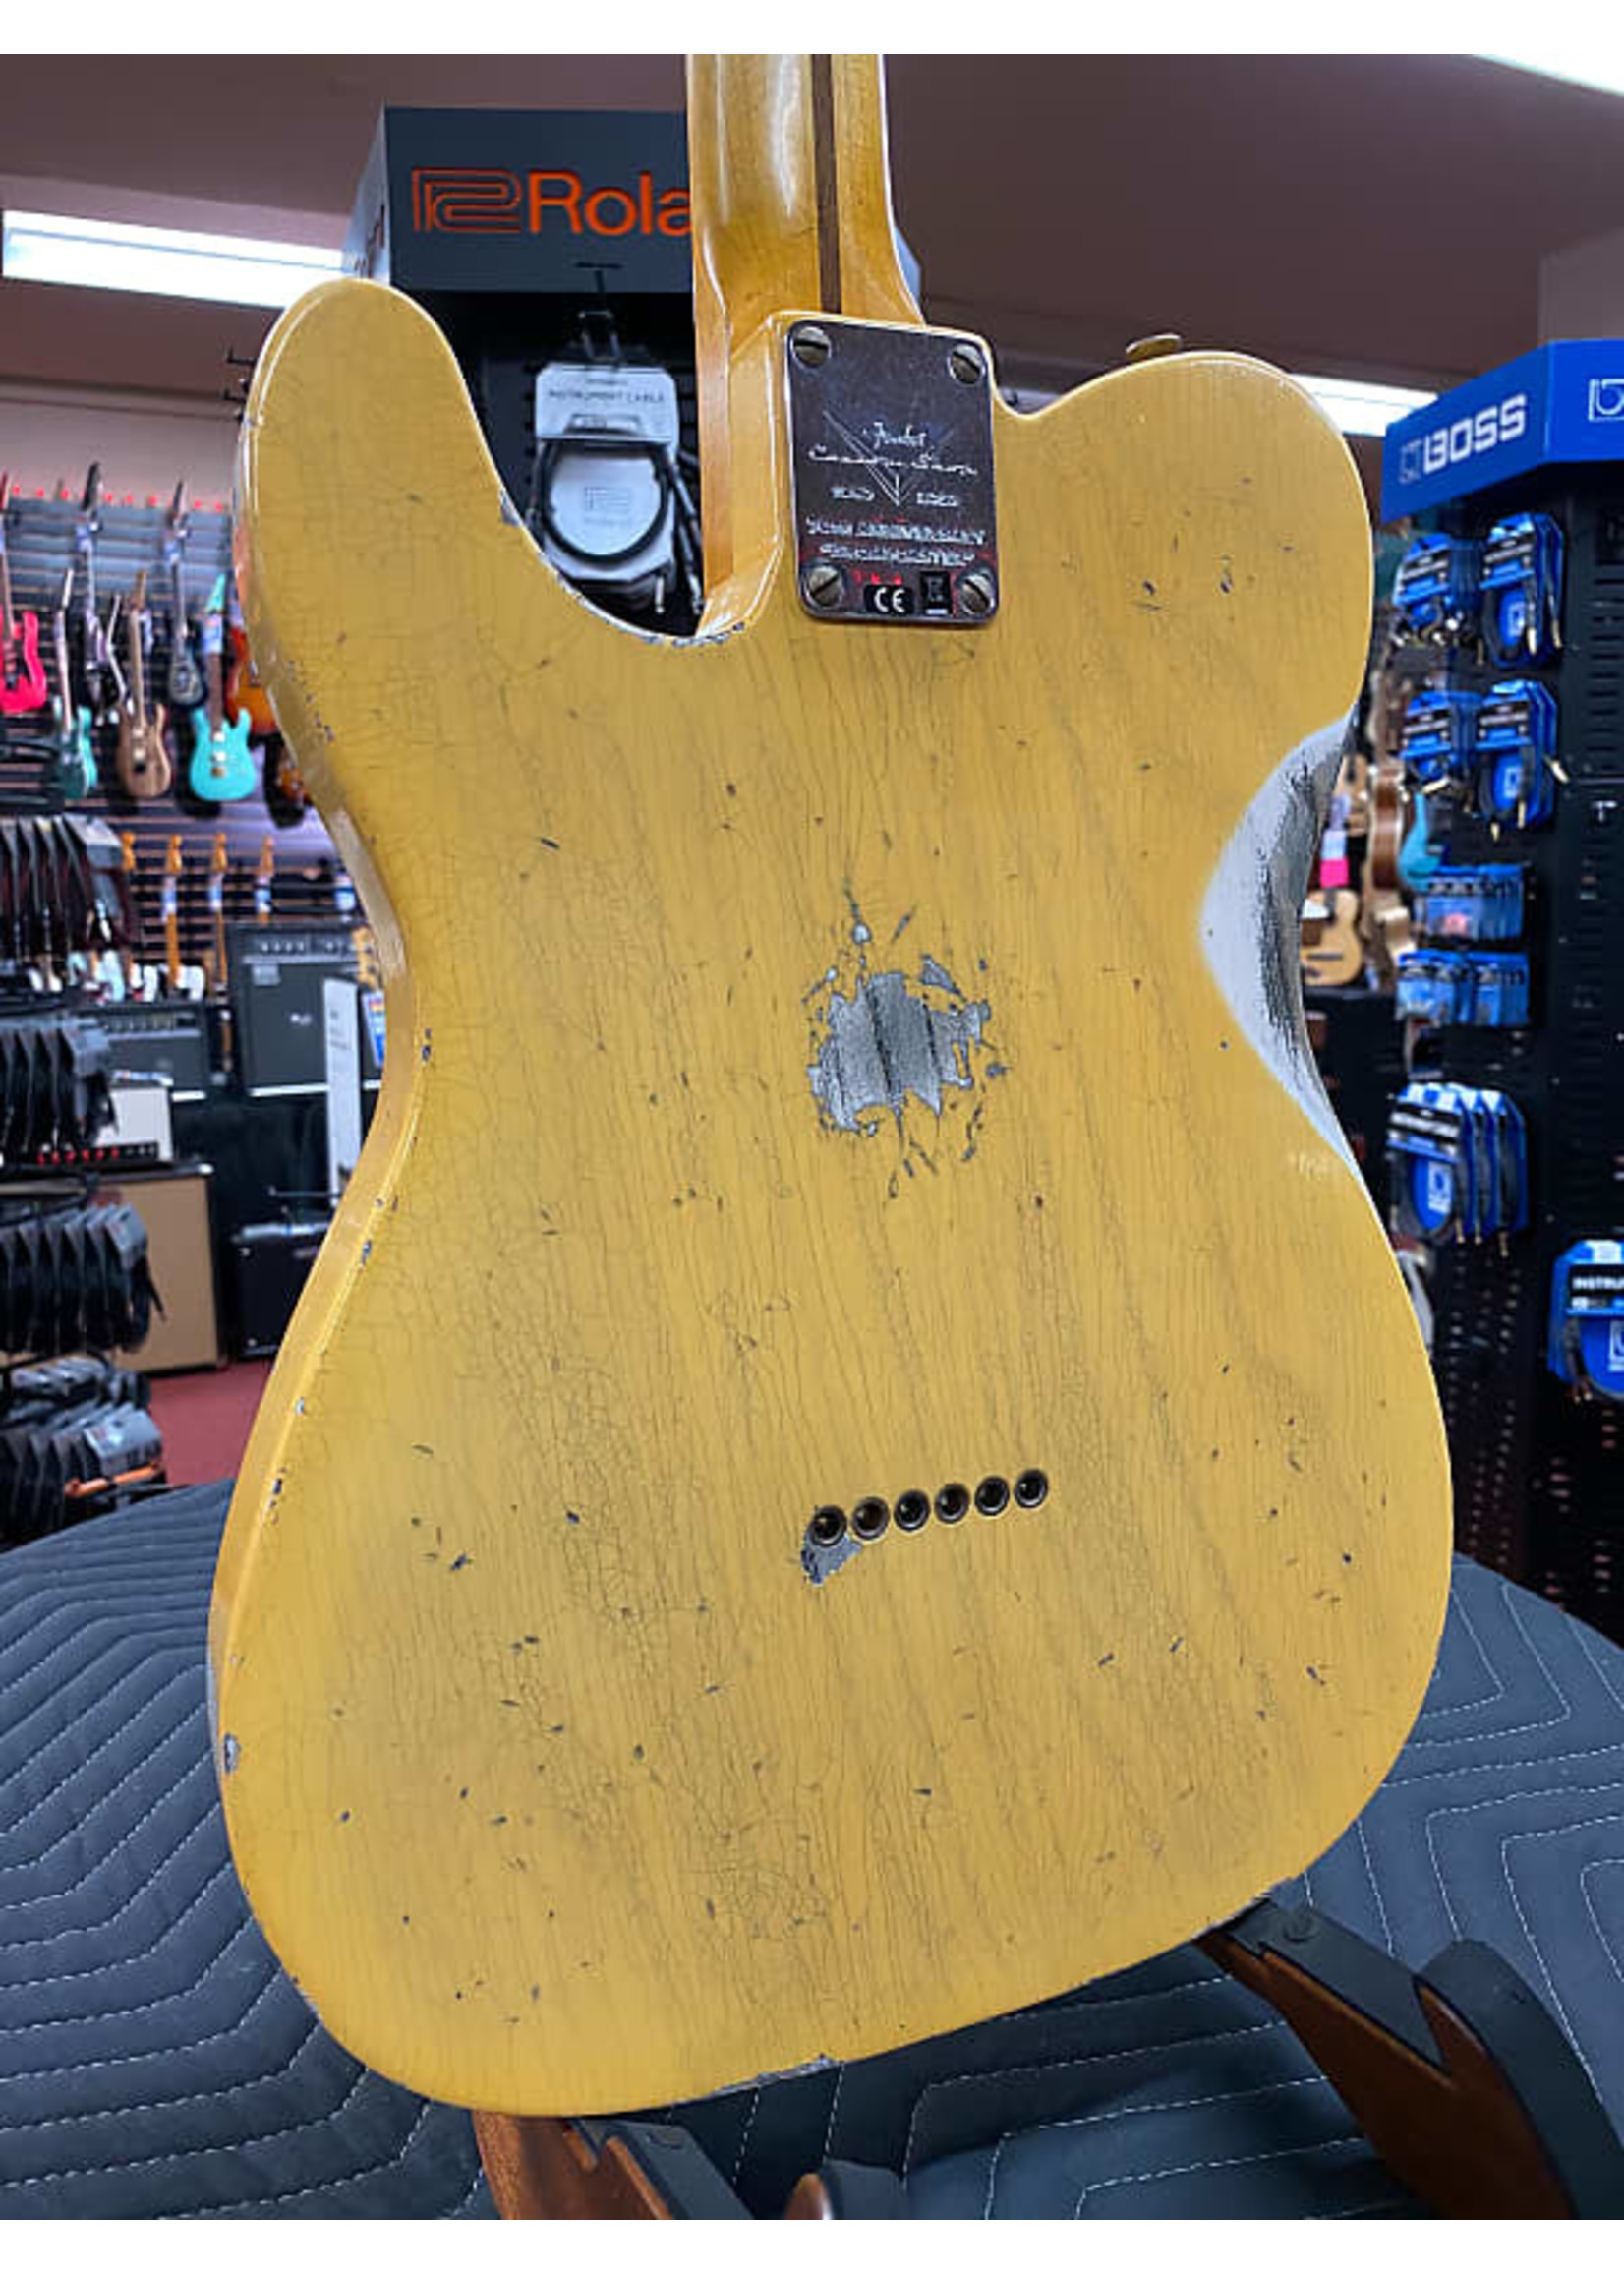 Fender Fender Custom Shop Limited Edition 70th Anniversary Broadcaster Heavy Relic - Aged Nocaster Blonde